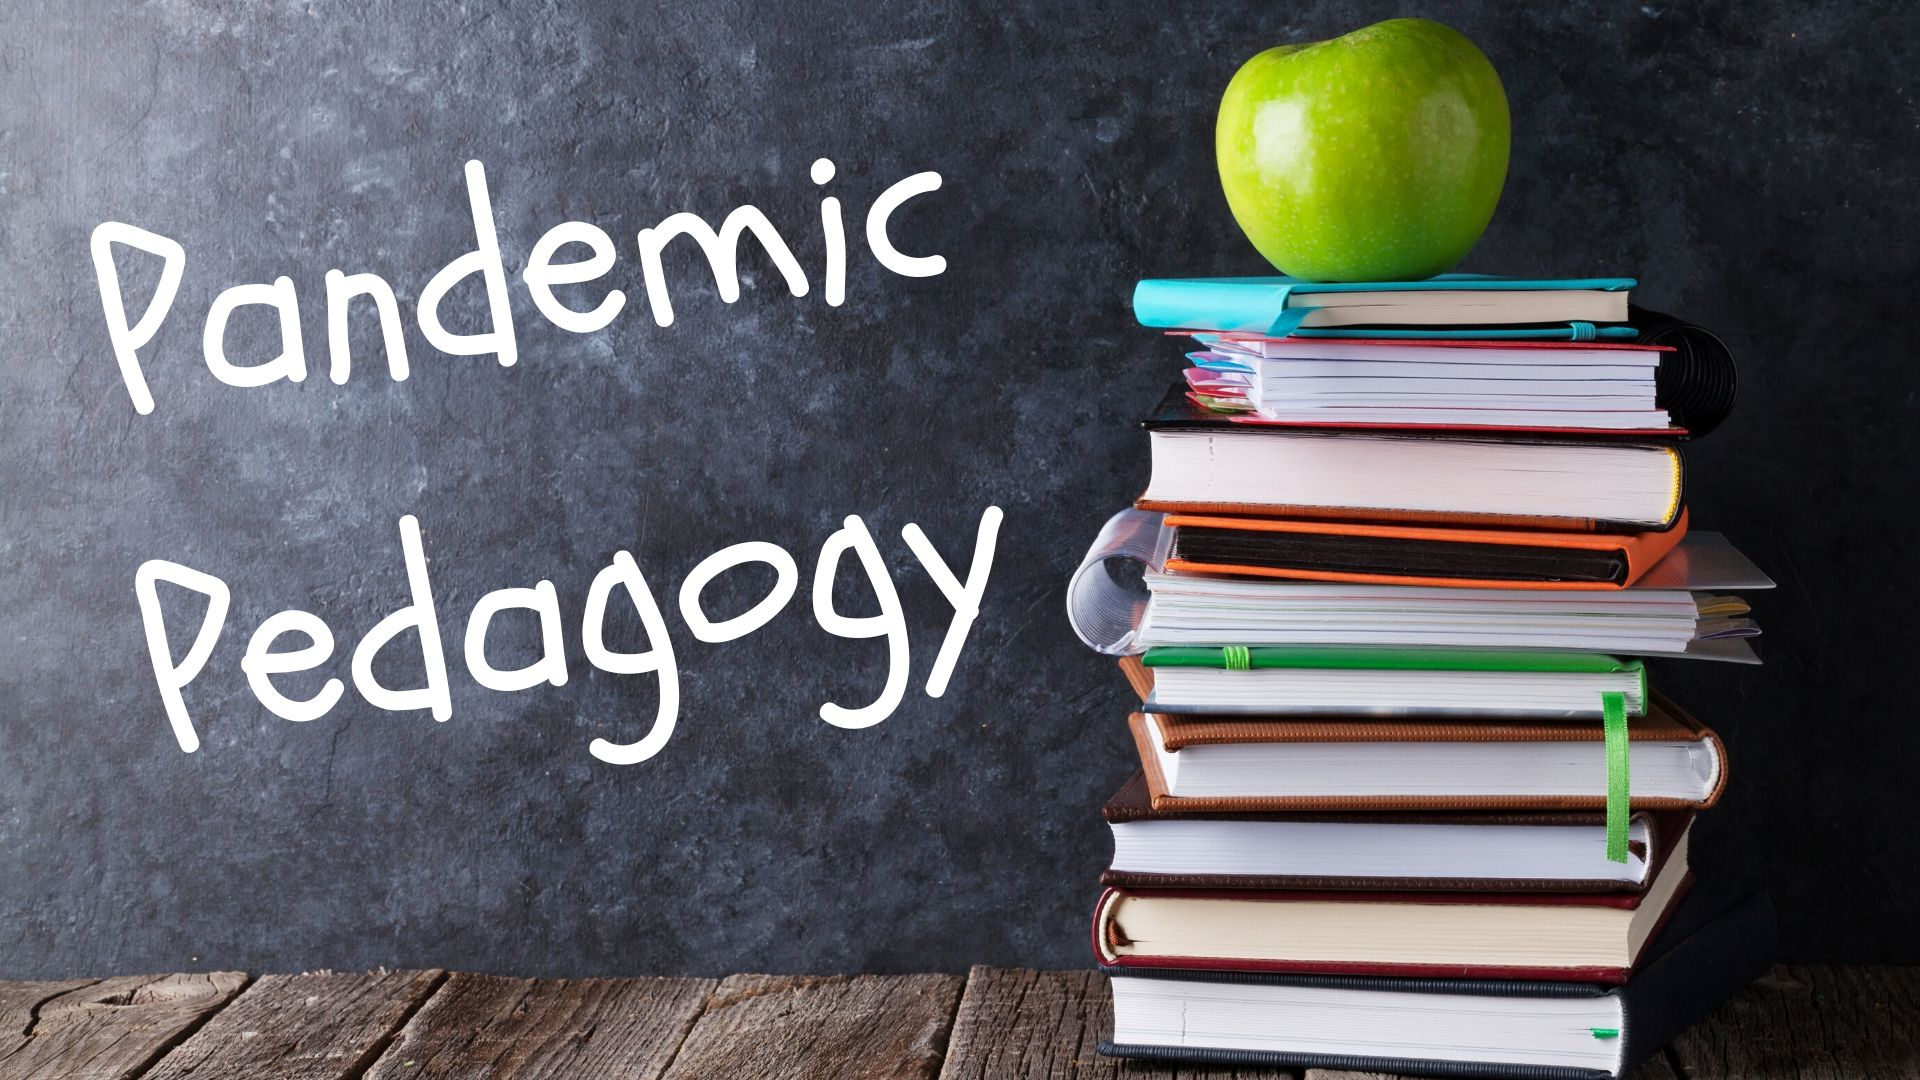 chalk board, books, apple, words: pandemic pedagogy